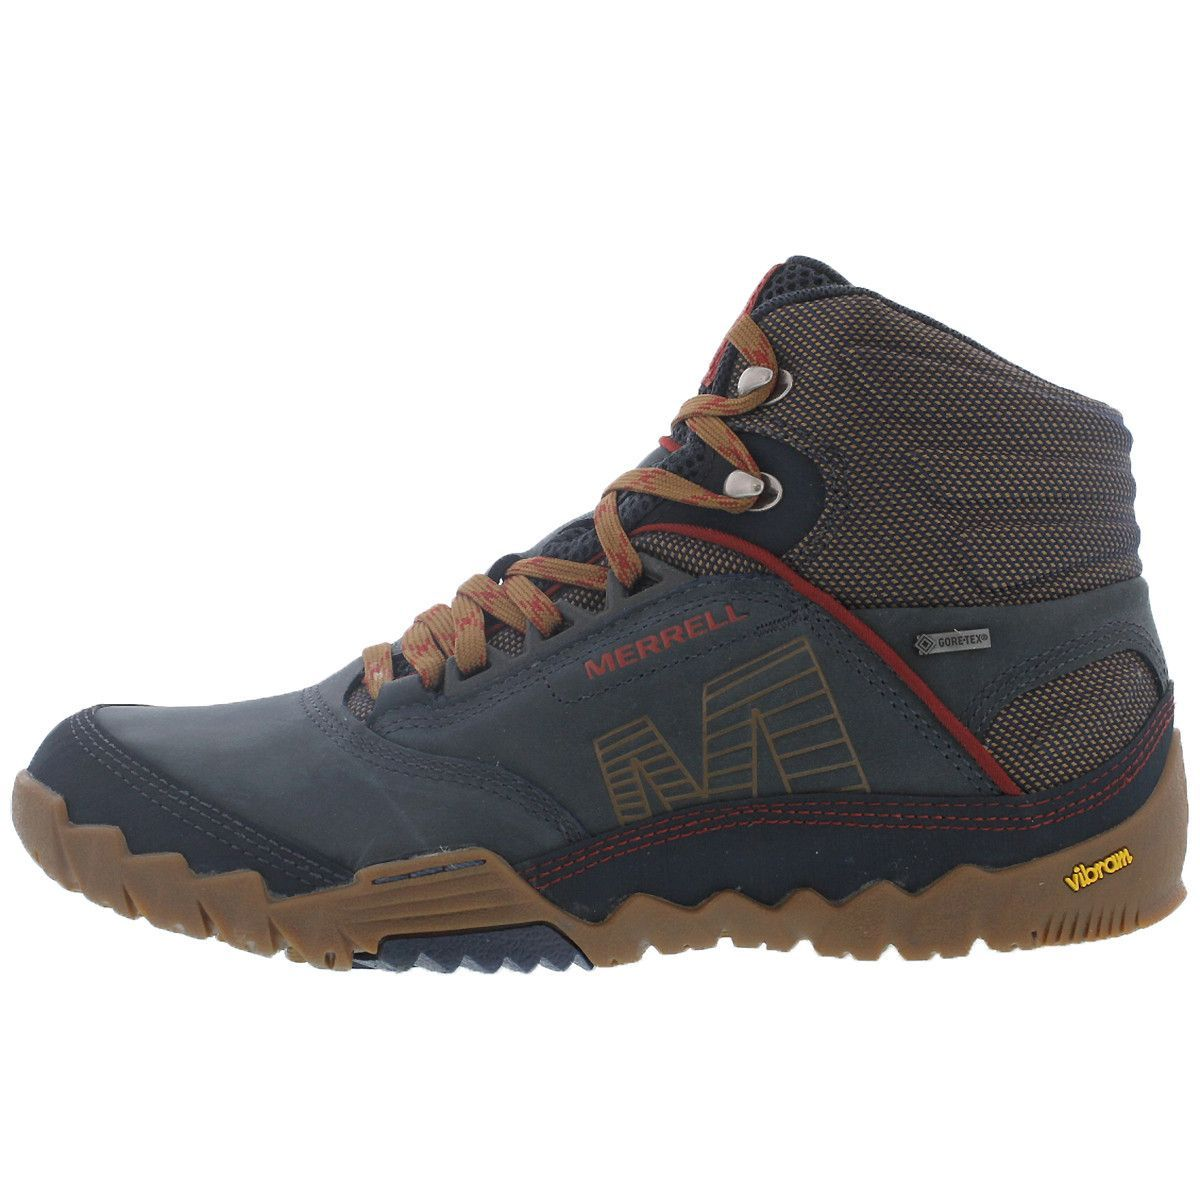 Merrell - Men's Annex Mid Gore-Tex Hiking Boots - Blue Wing